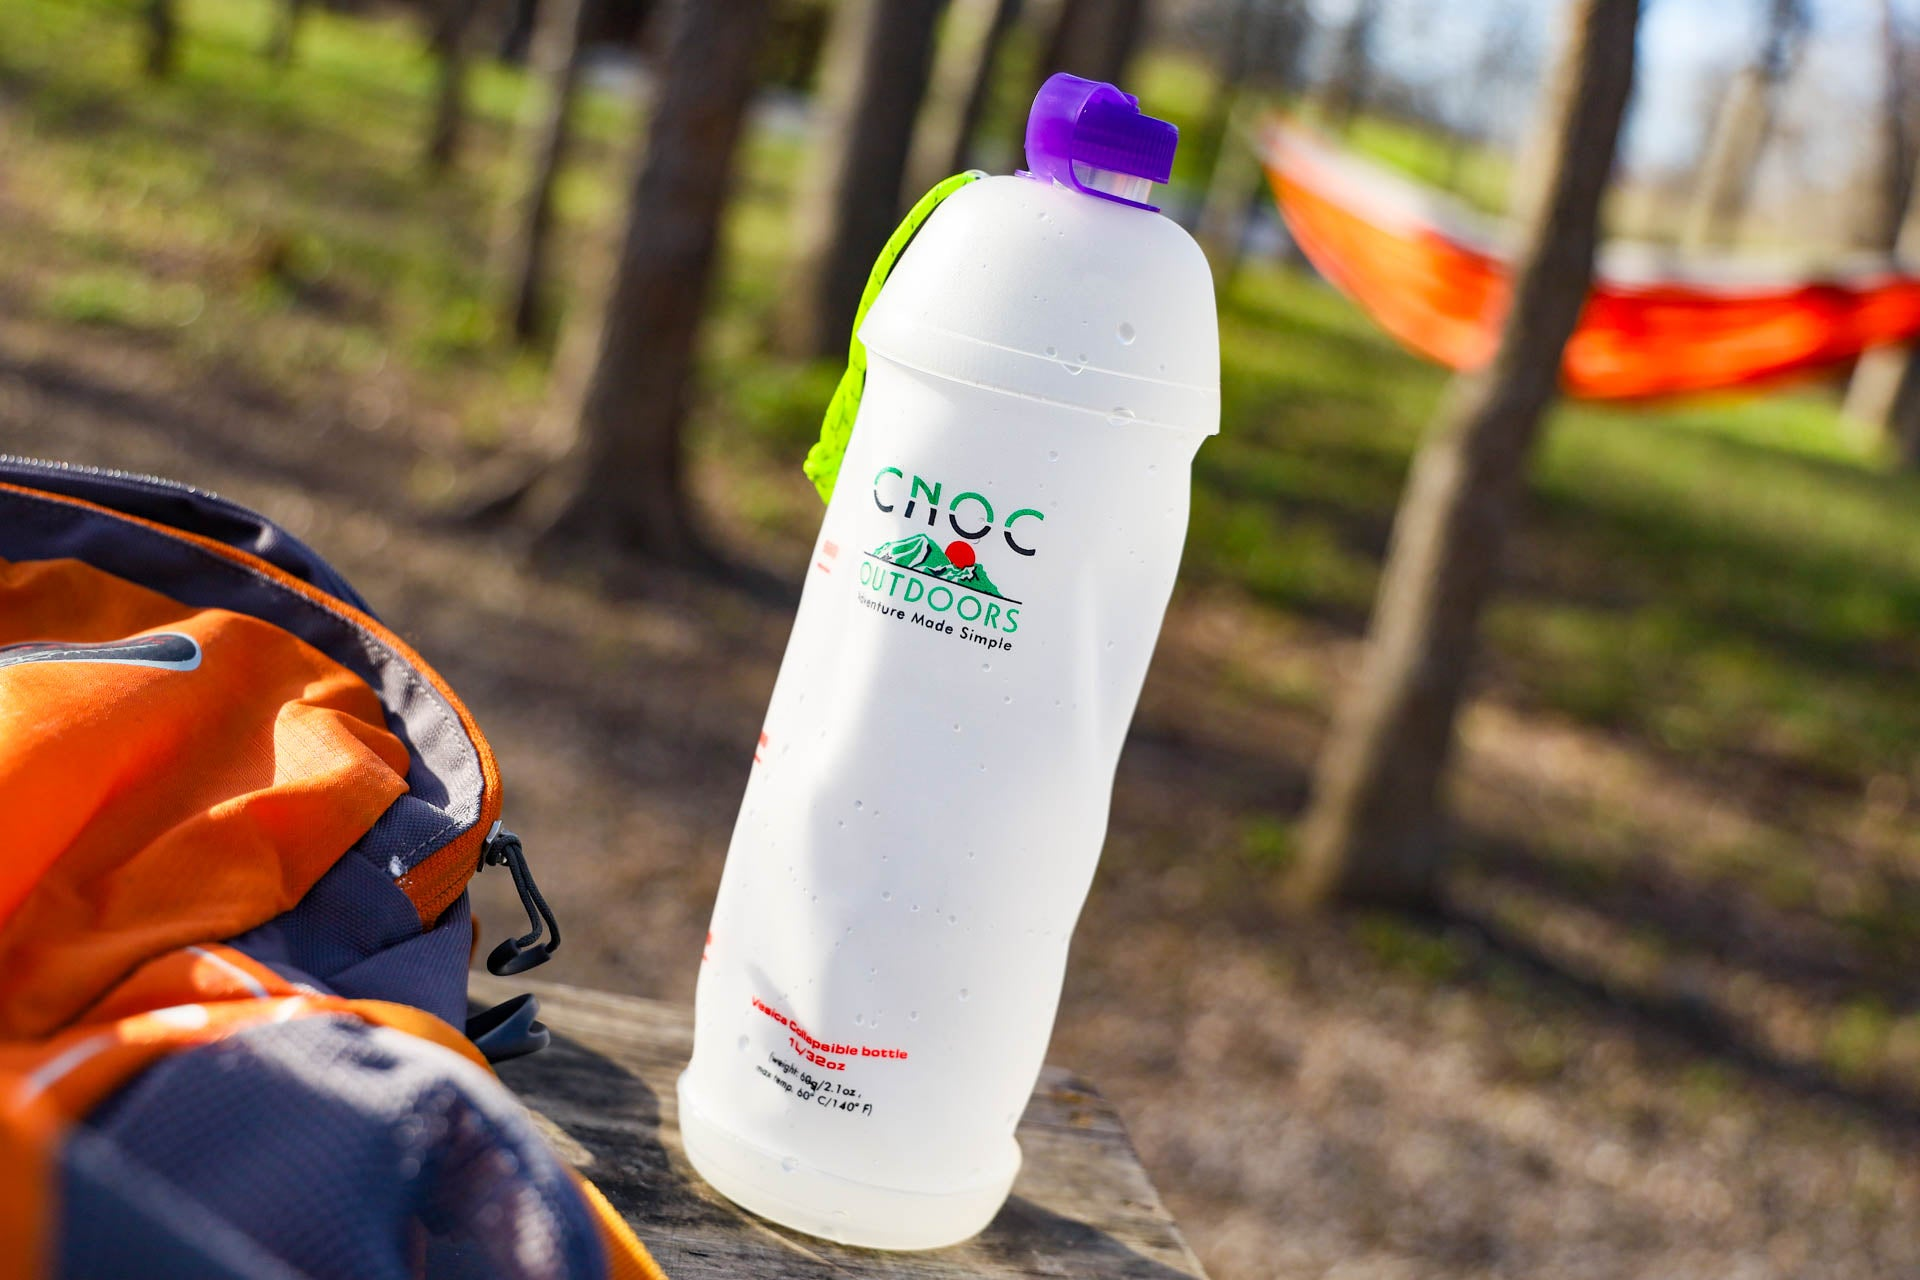 Best Sustainable Backpacking Gear Eco-Friendly Made by Small Brands Cnoc Collapsible Water Bottle